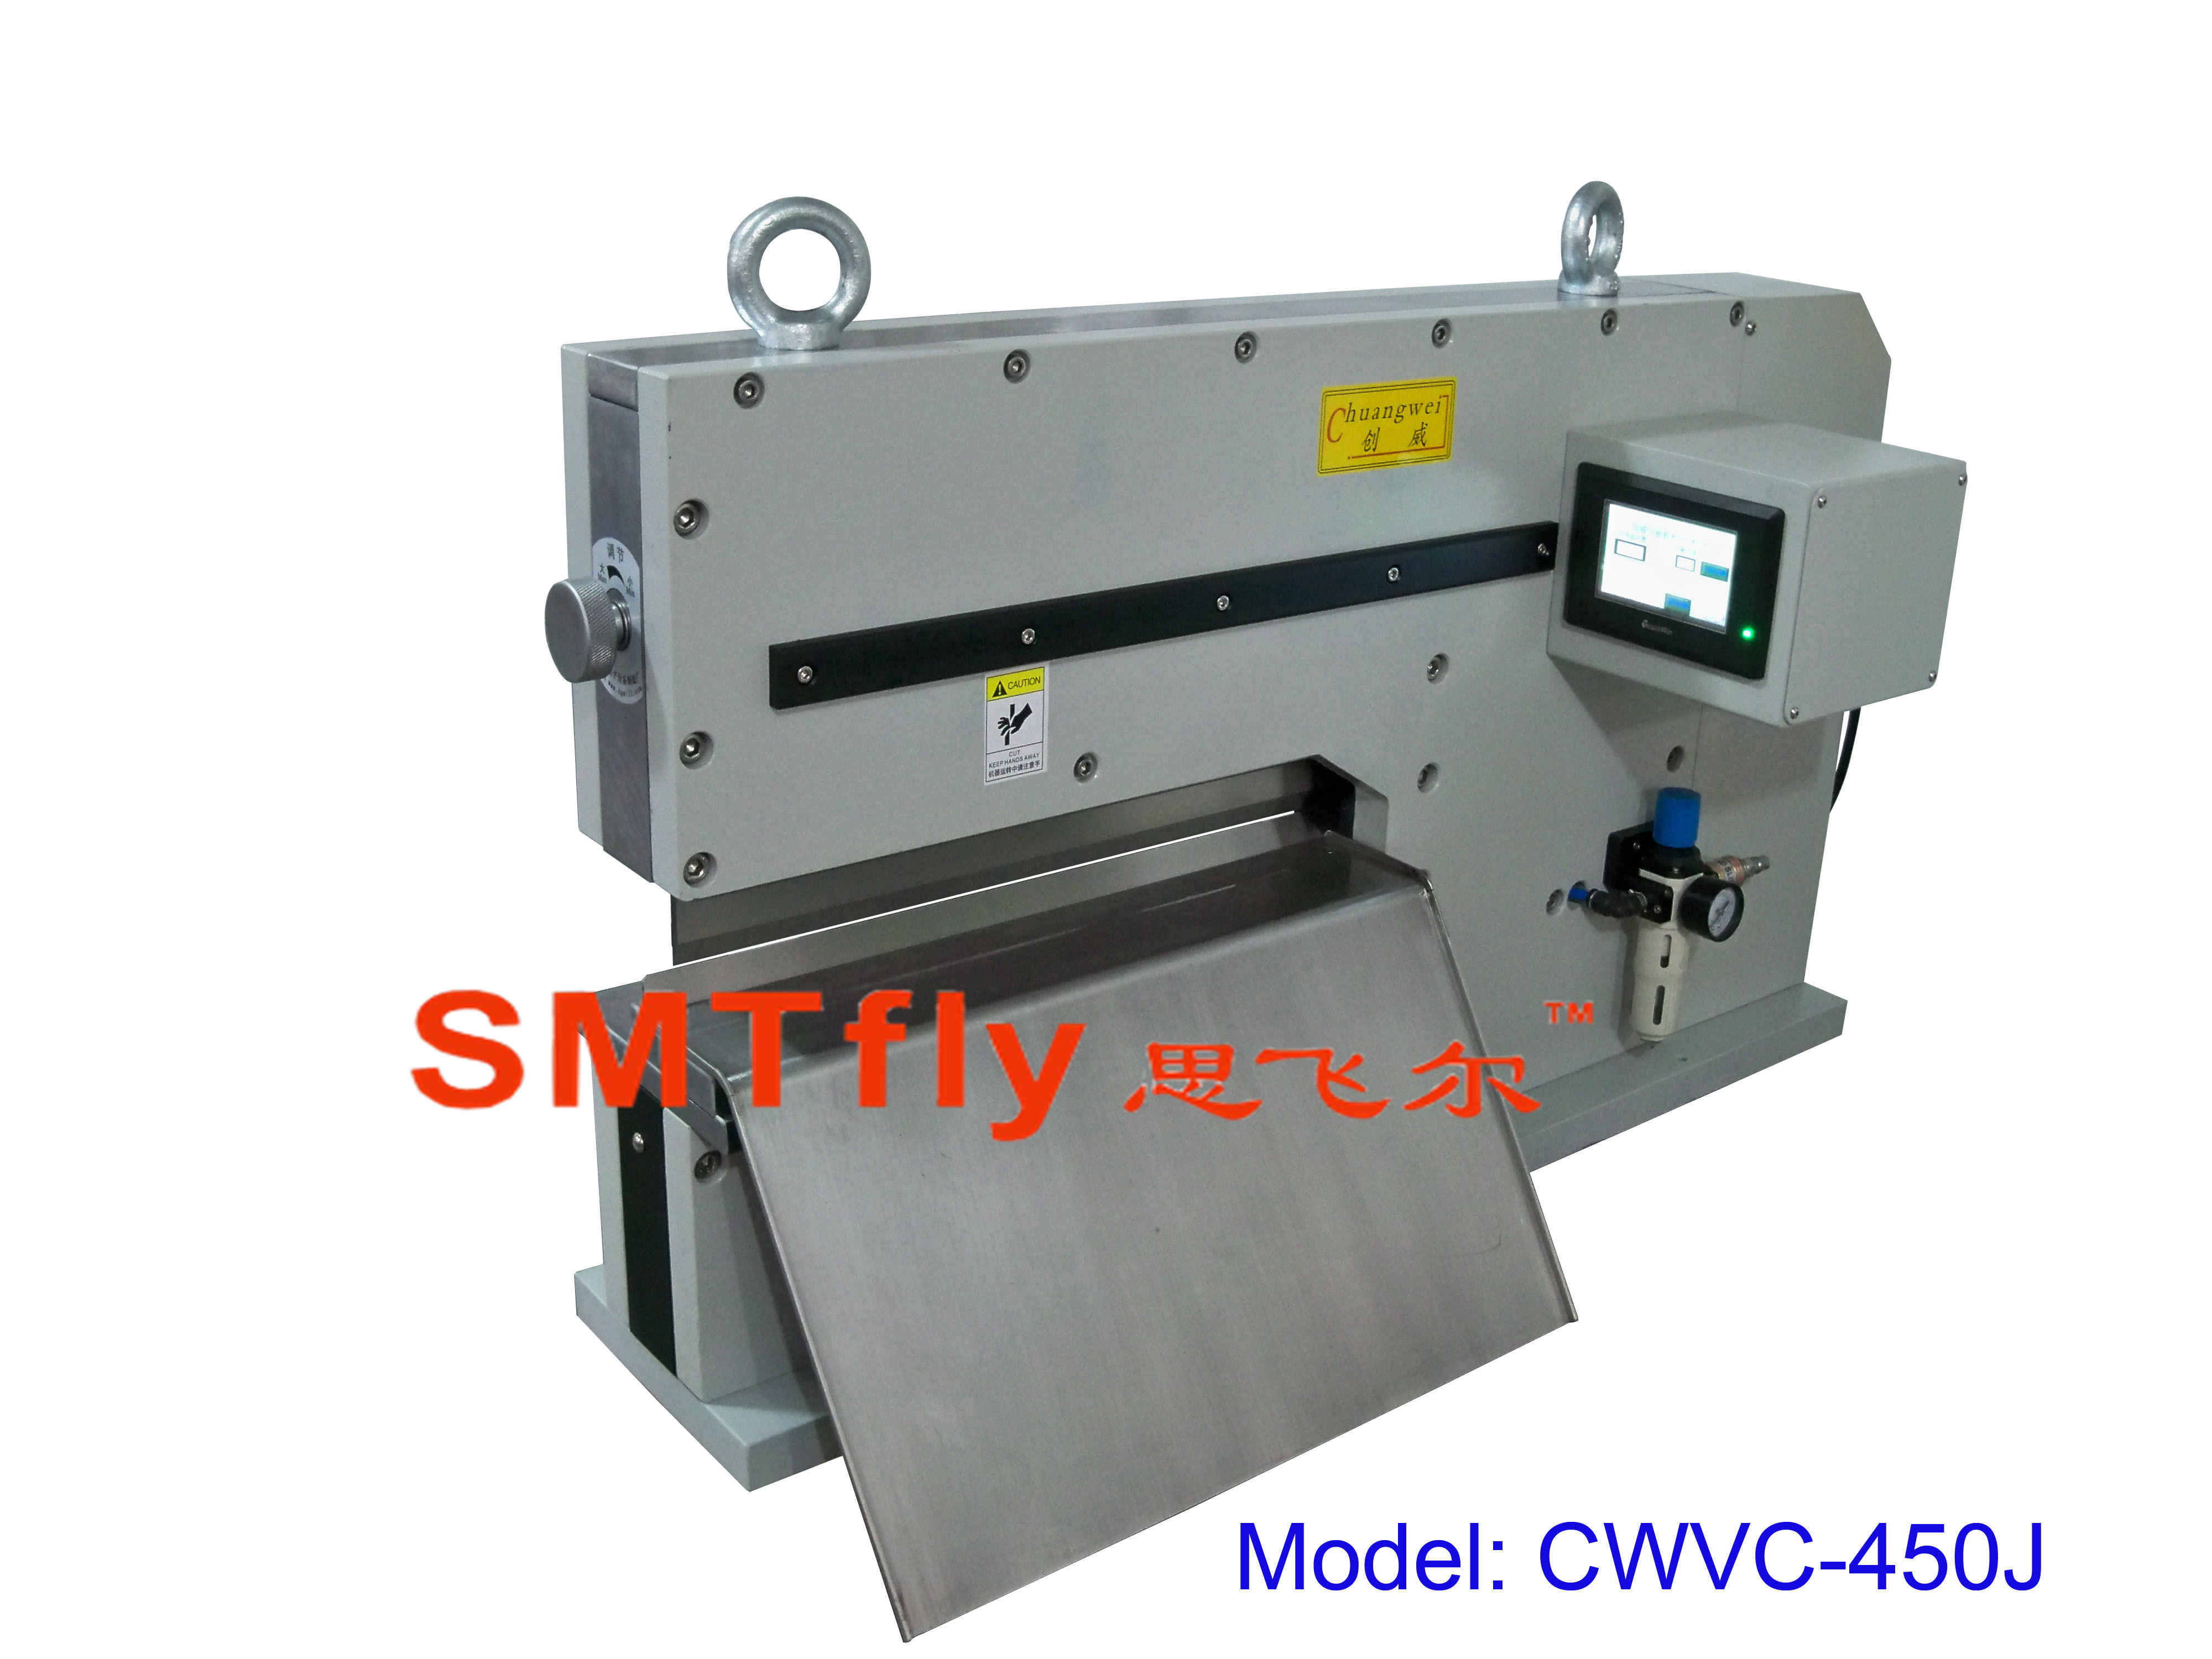 PCB Linear Cutting Equipment,SMTfly-450J